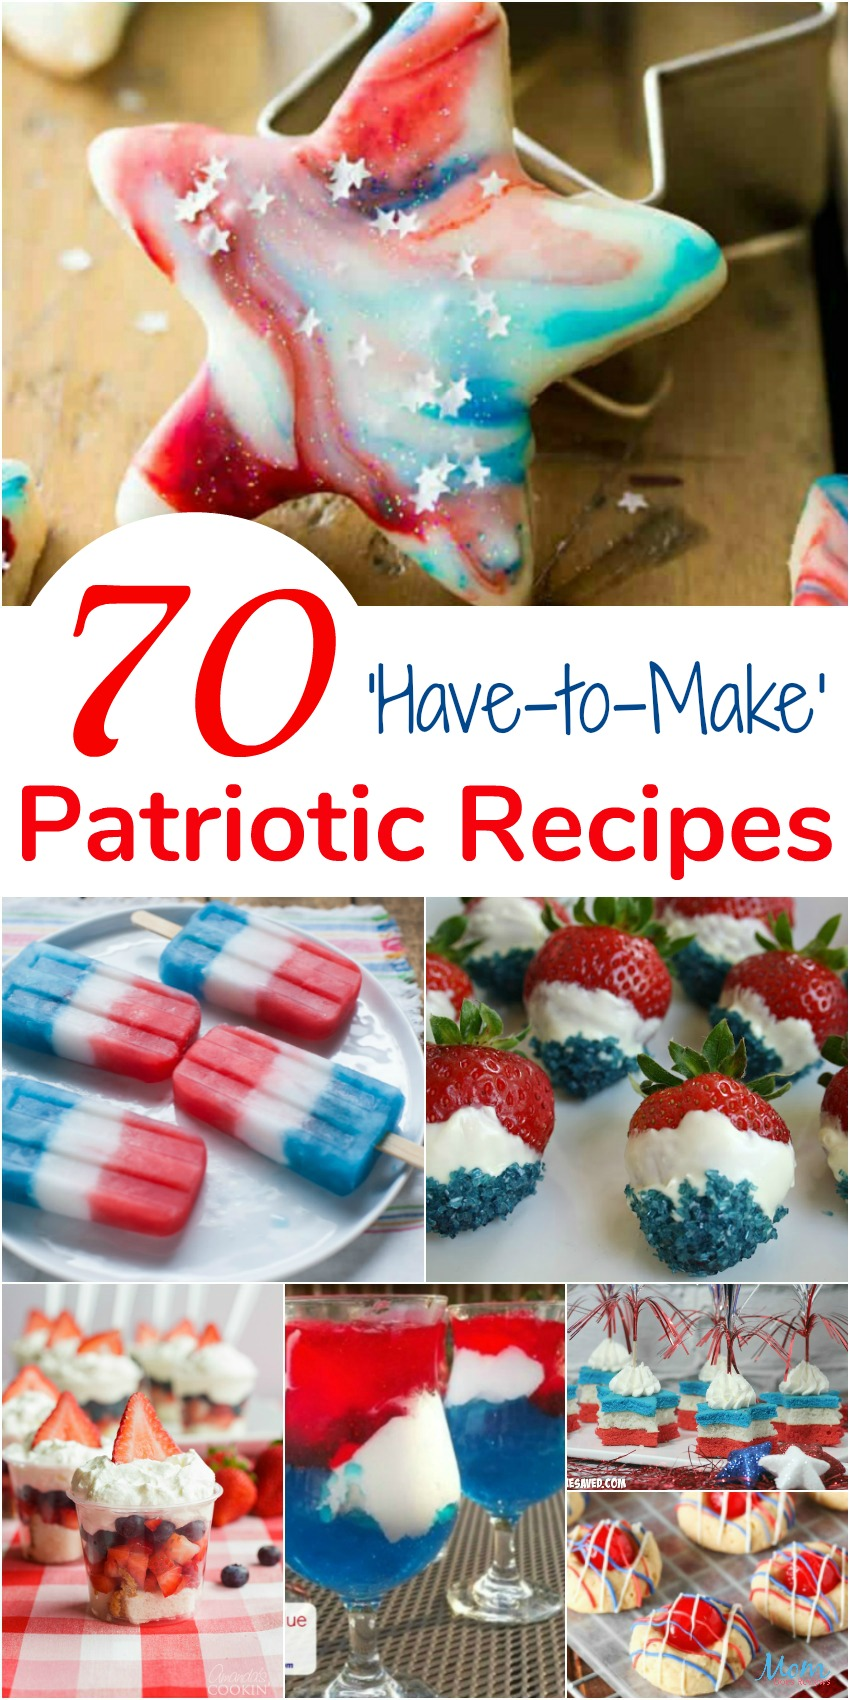 70 'Have-to-Make' Patriotic Recipes to Help you Celebrate!